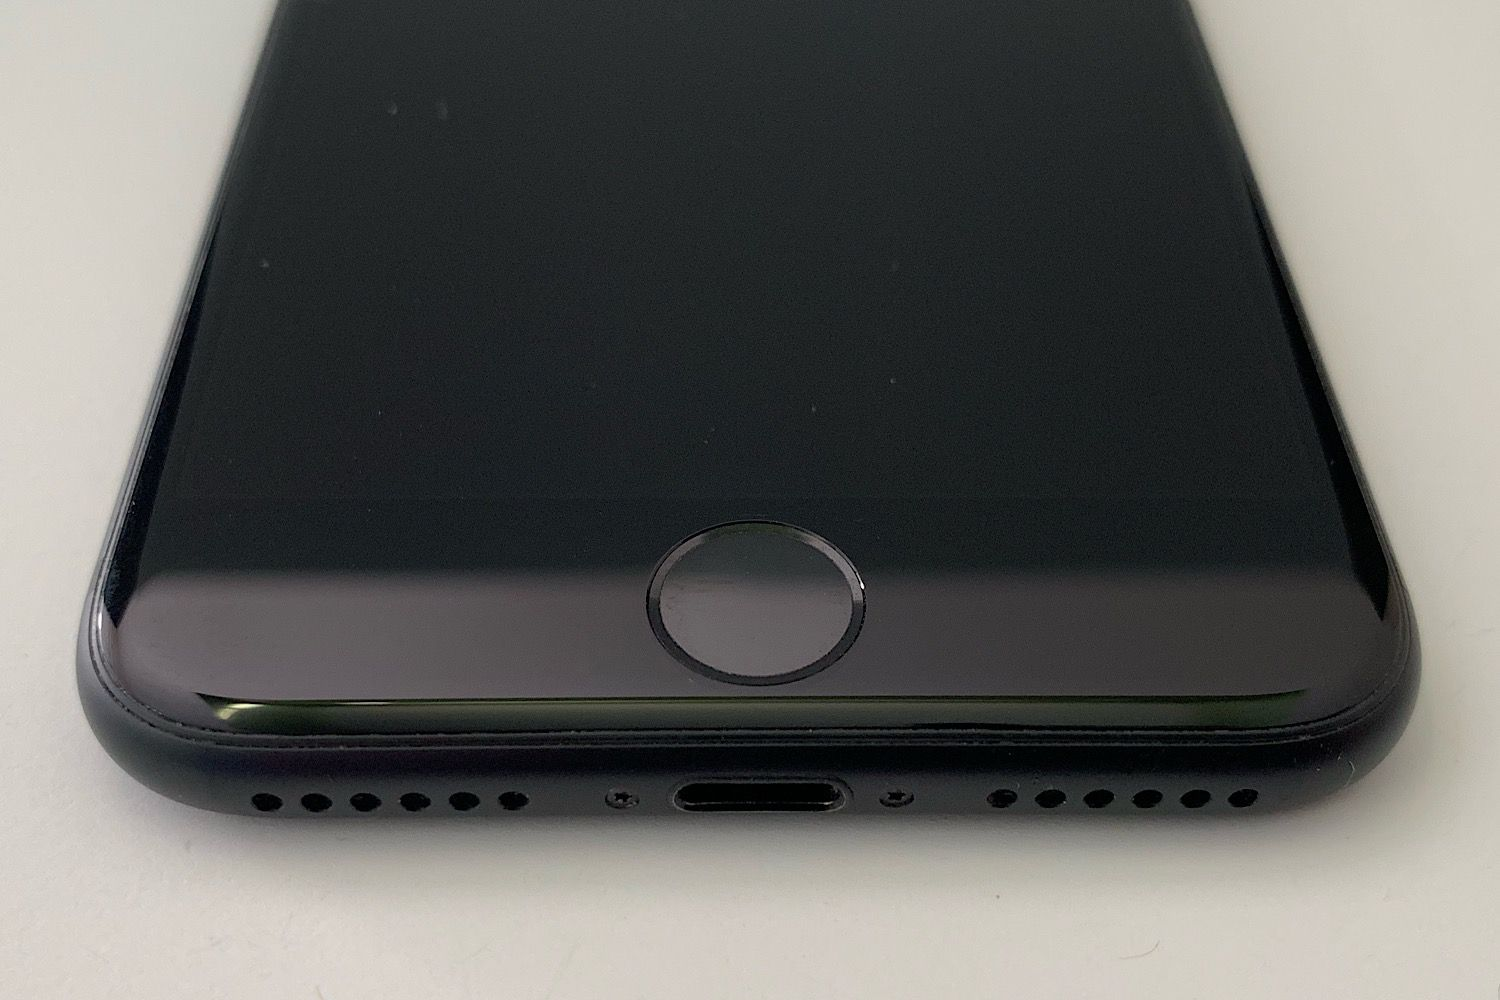 Photo of iPhone 7 zoomed in on Touch ID/home button at bottom of phone.